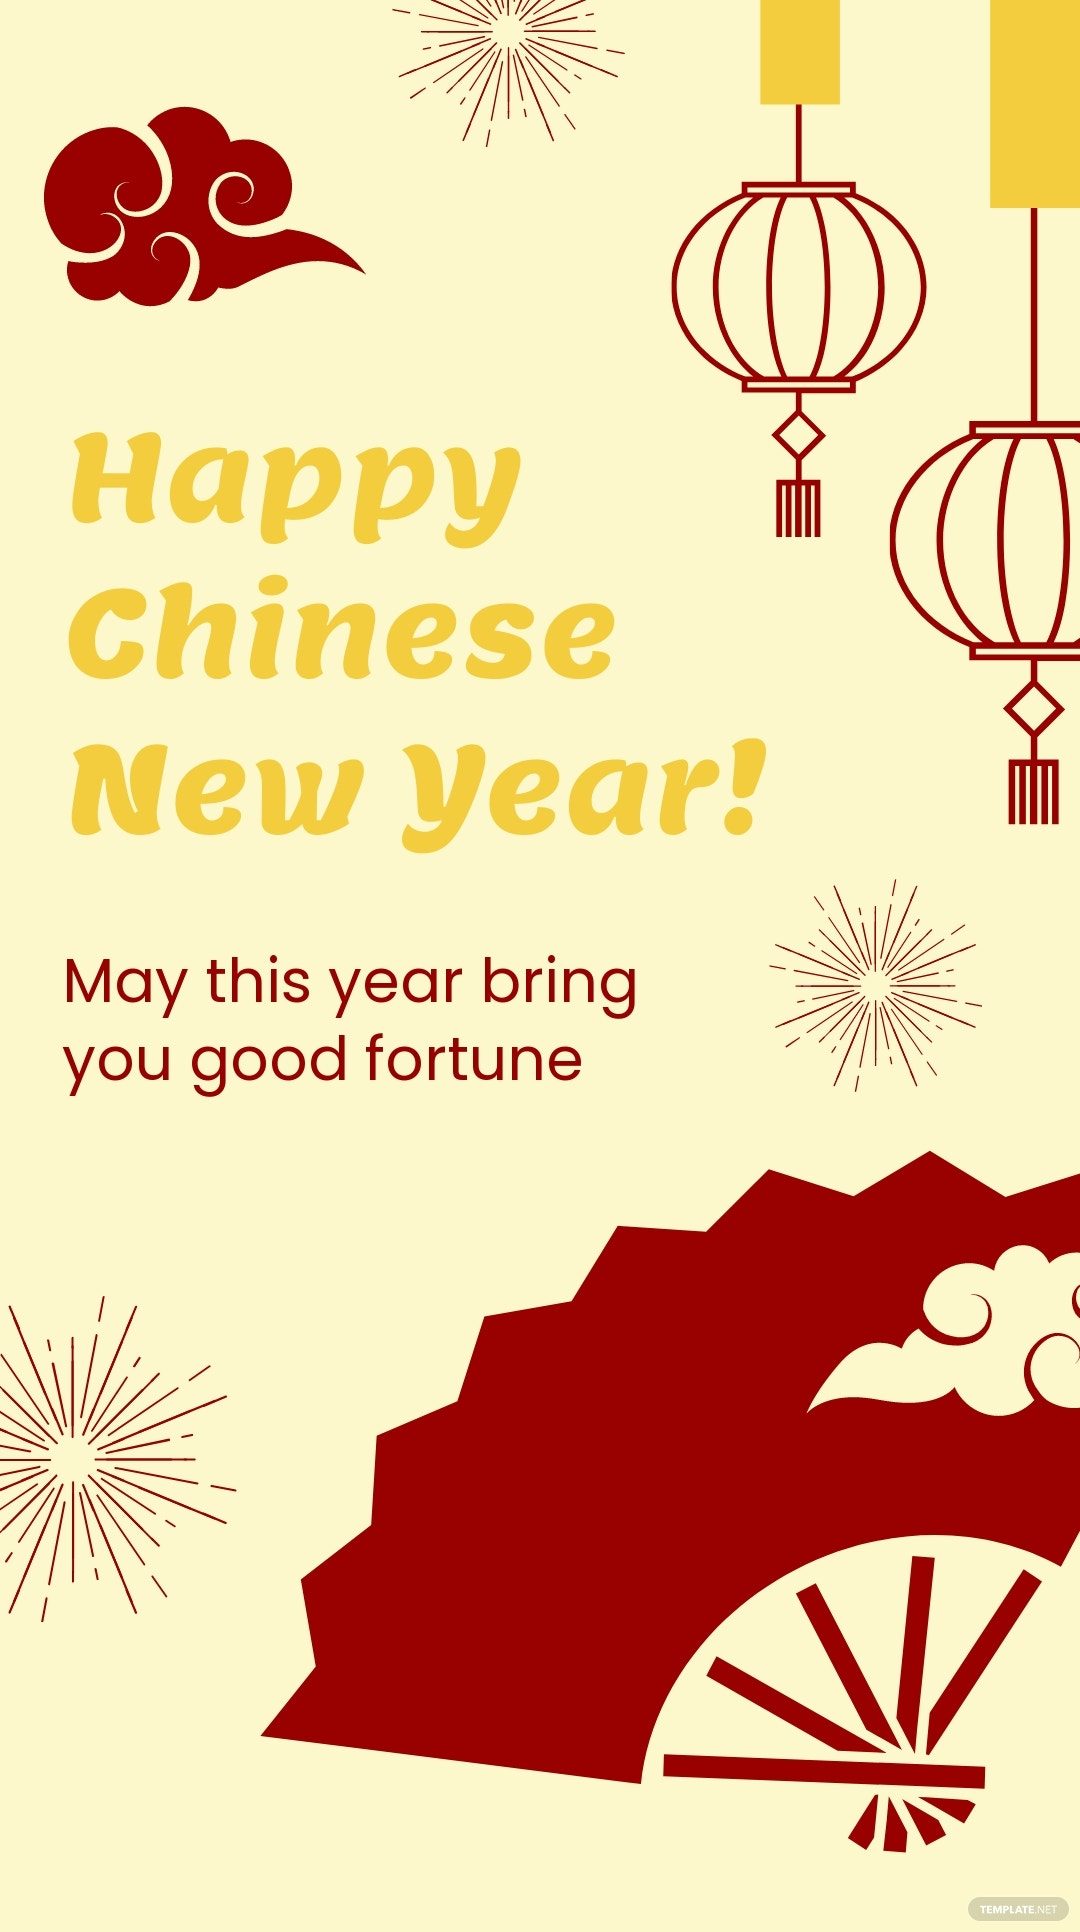 Chinese New Year Greeting Instagram Story Template.jpe